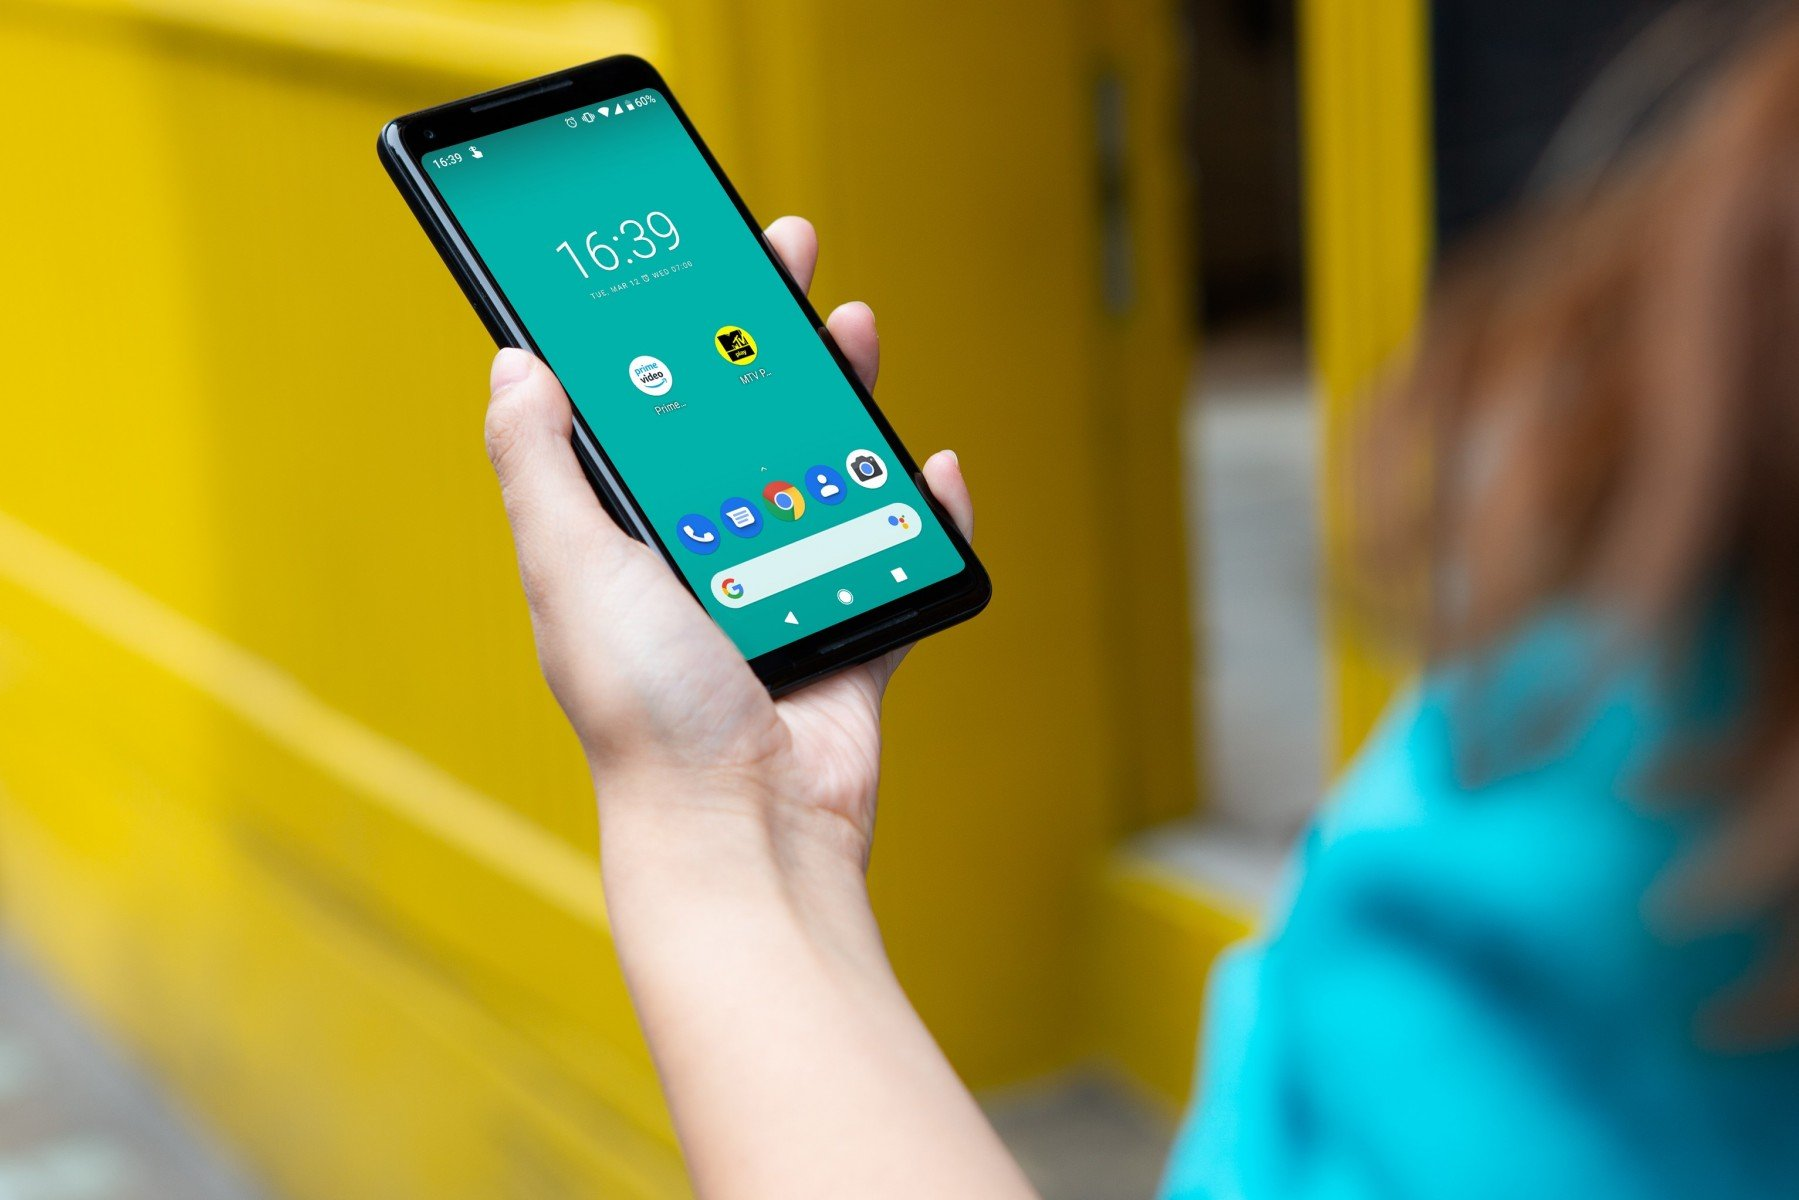 How to Unlock EE Phone out of Contract (Free Online Guide)